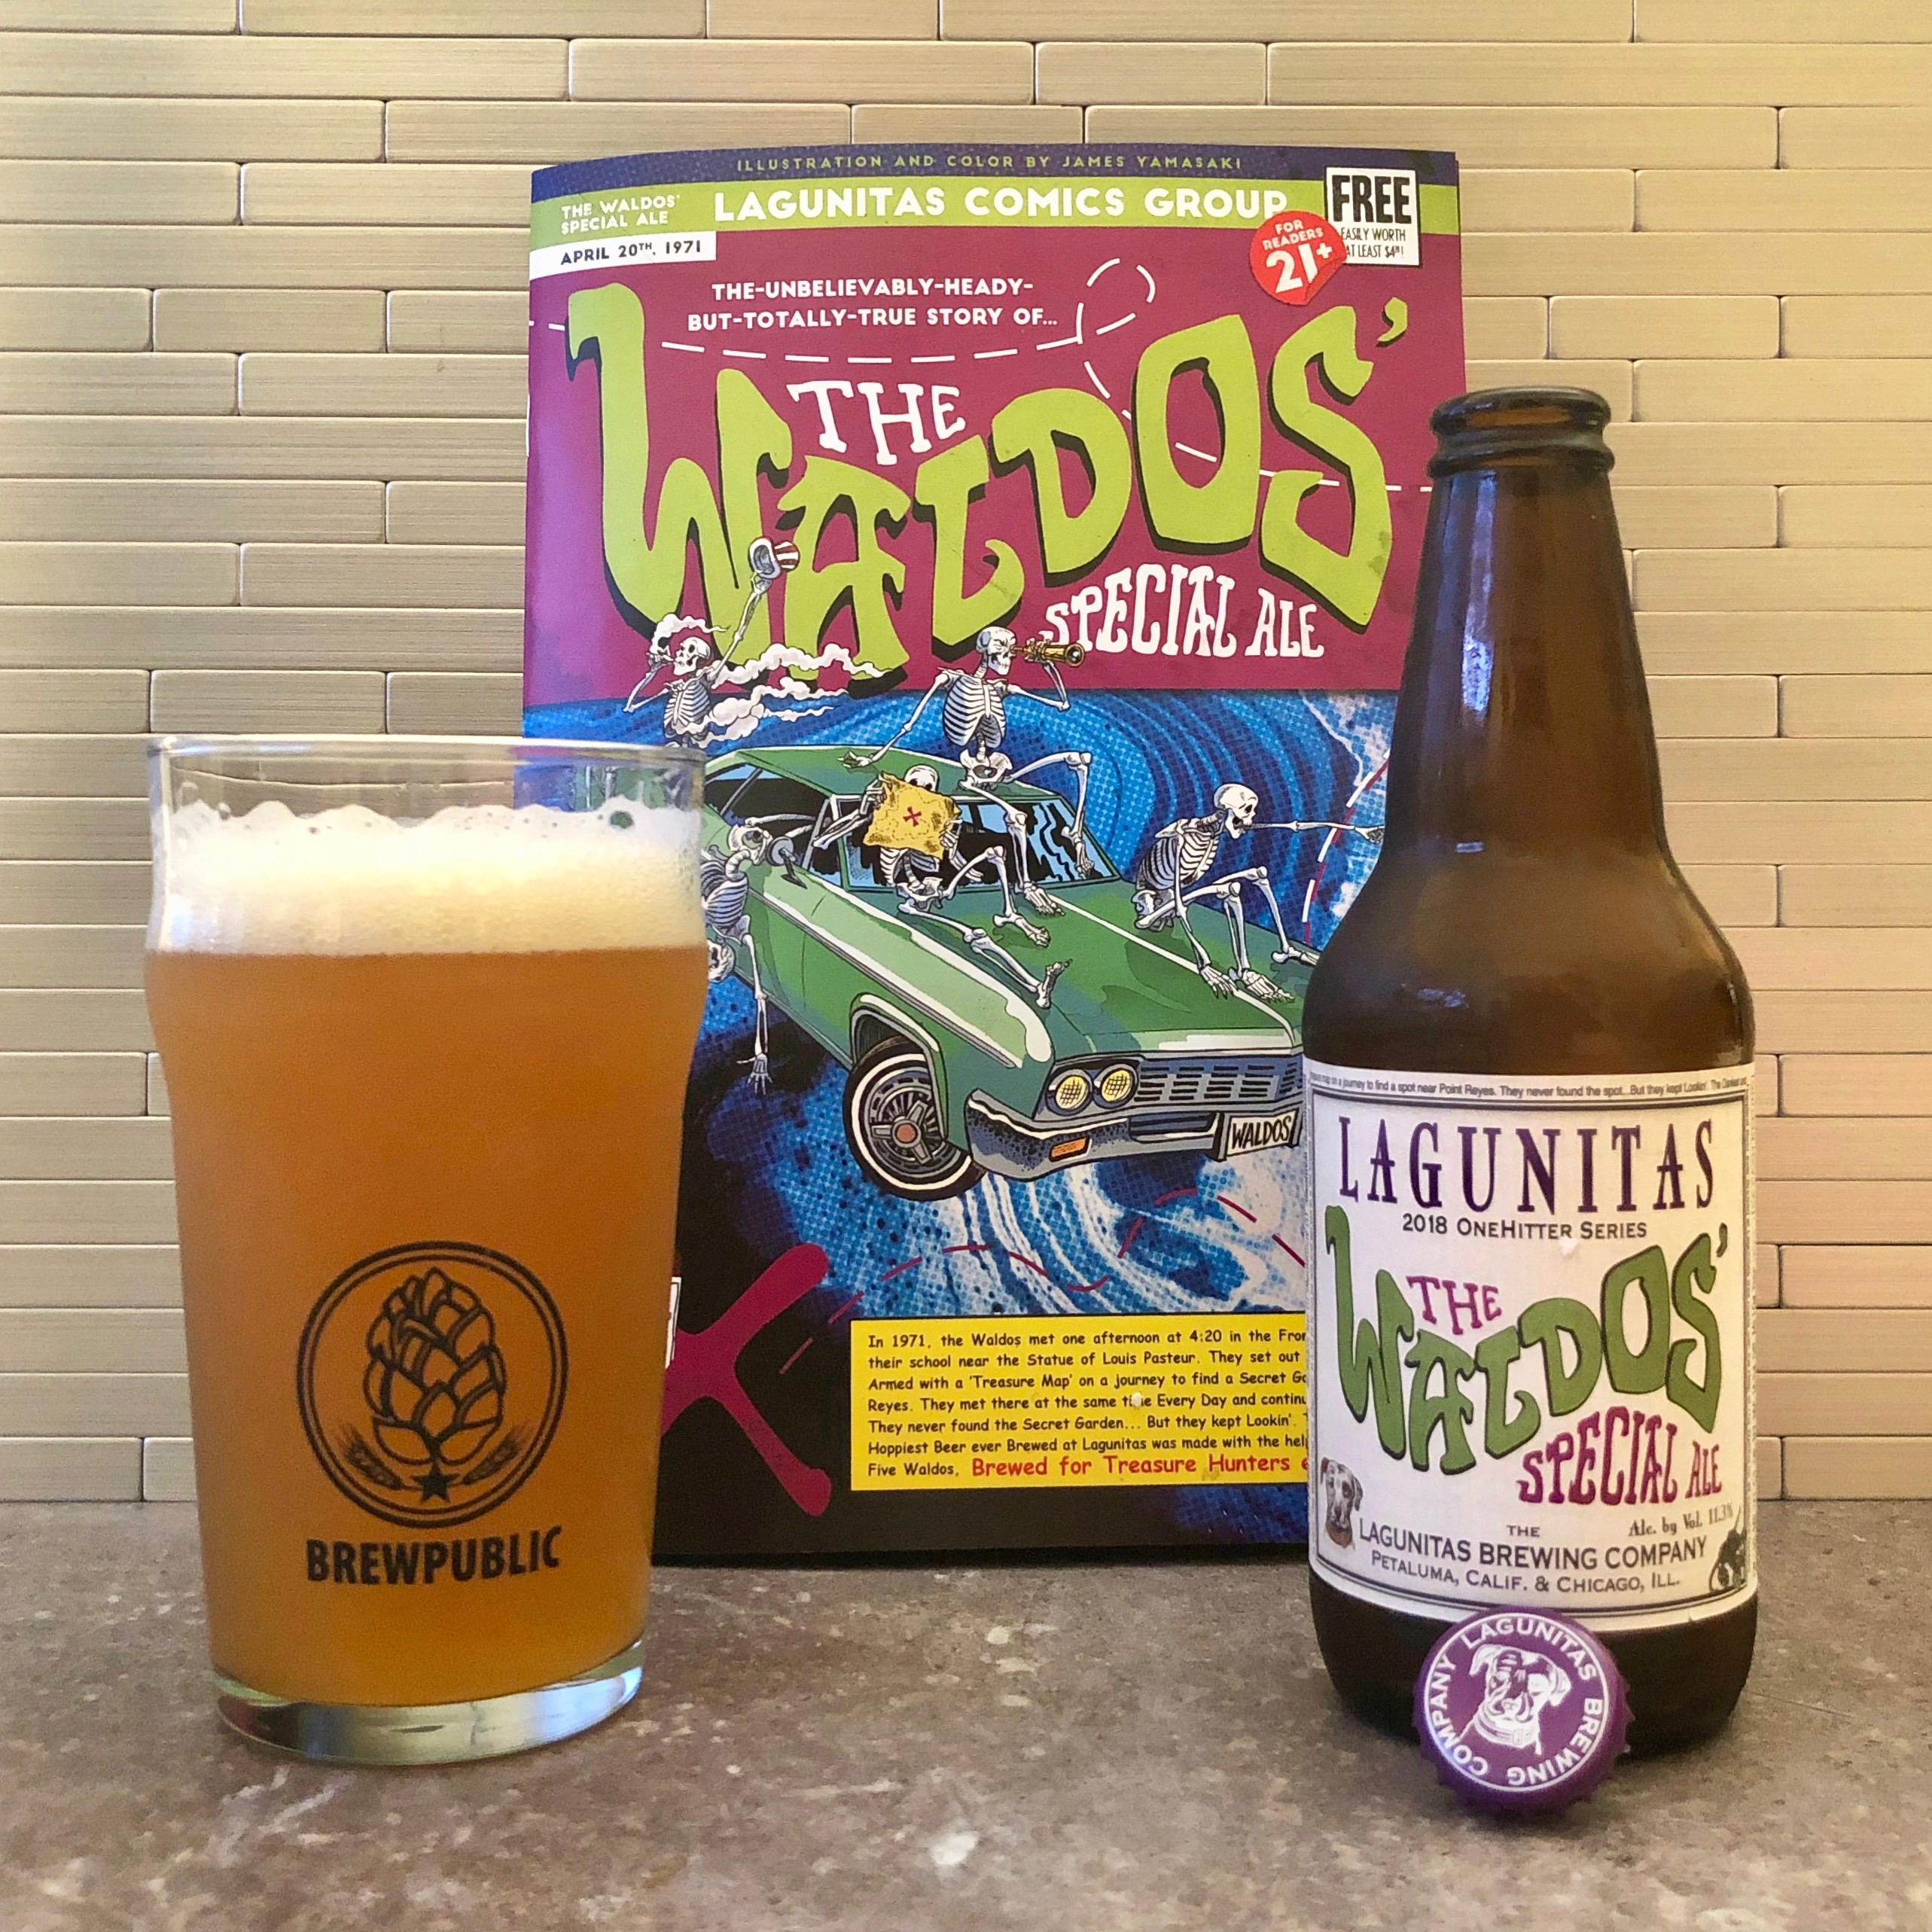 Lagunitas Brewing celebrates 420 Day with its annual release of The Waldos' Special Ale.